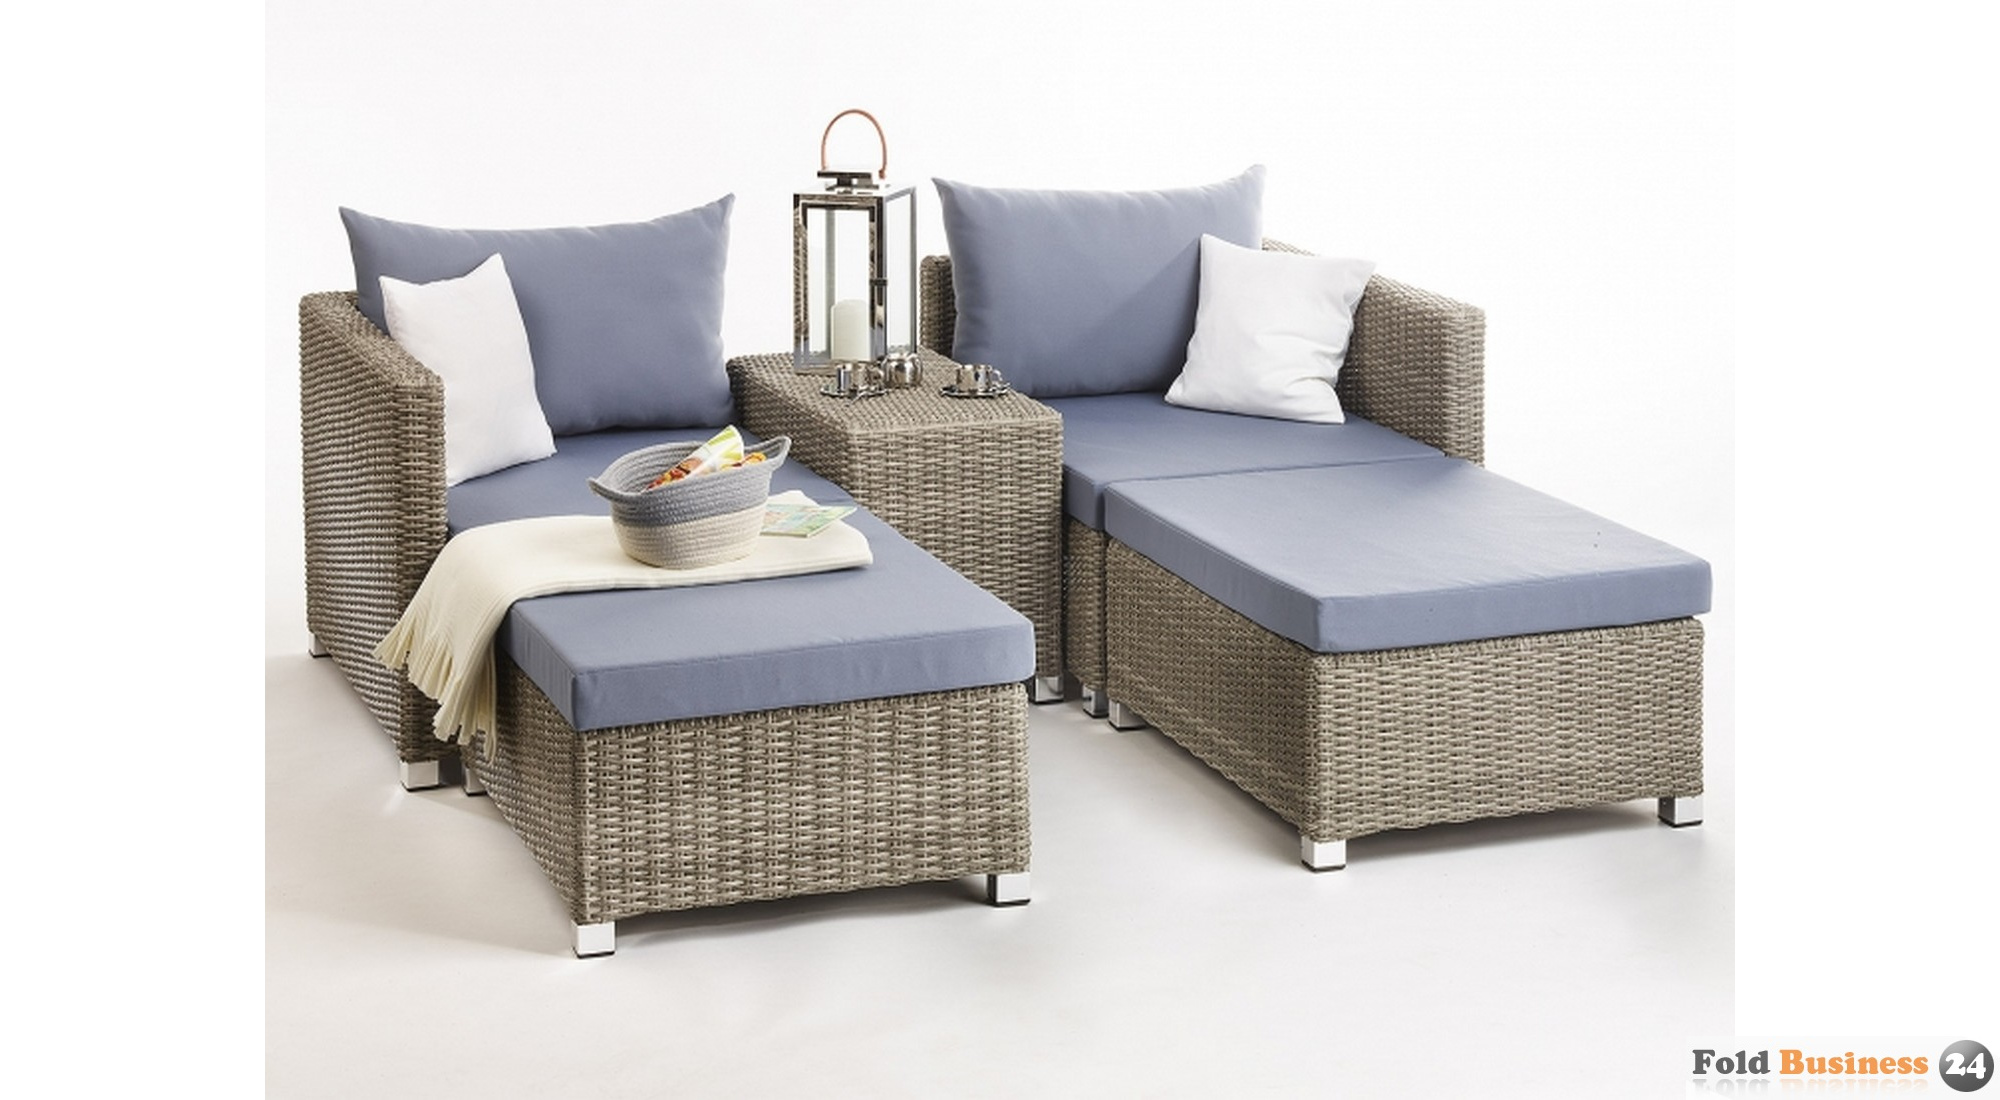 m belgruppe loungem bel sitzgruppe polyrattan grau blau 69. Black Bedroom Furniture Sets. Home Design Ideas